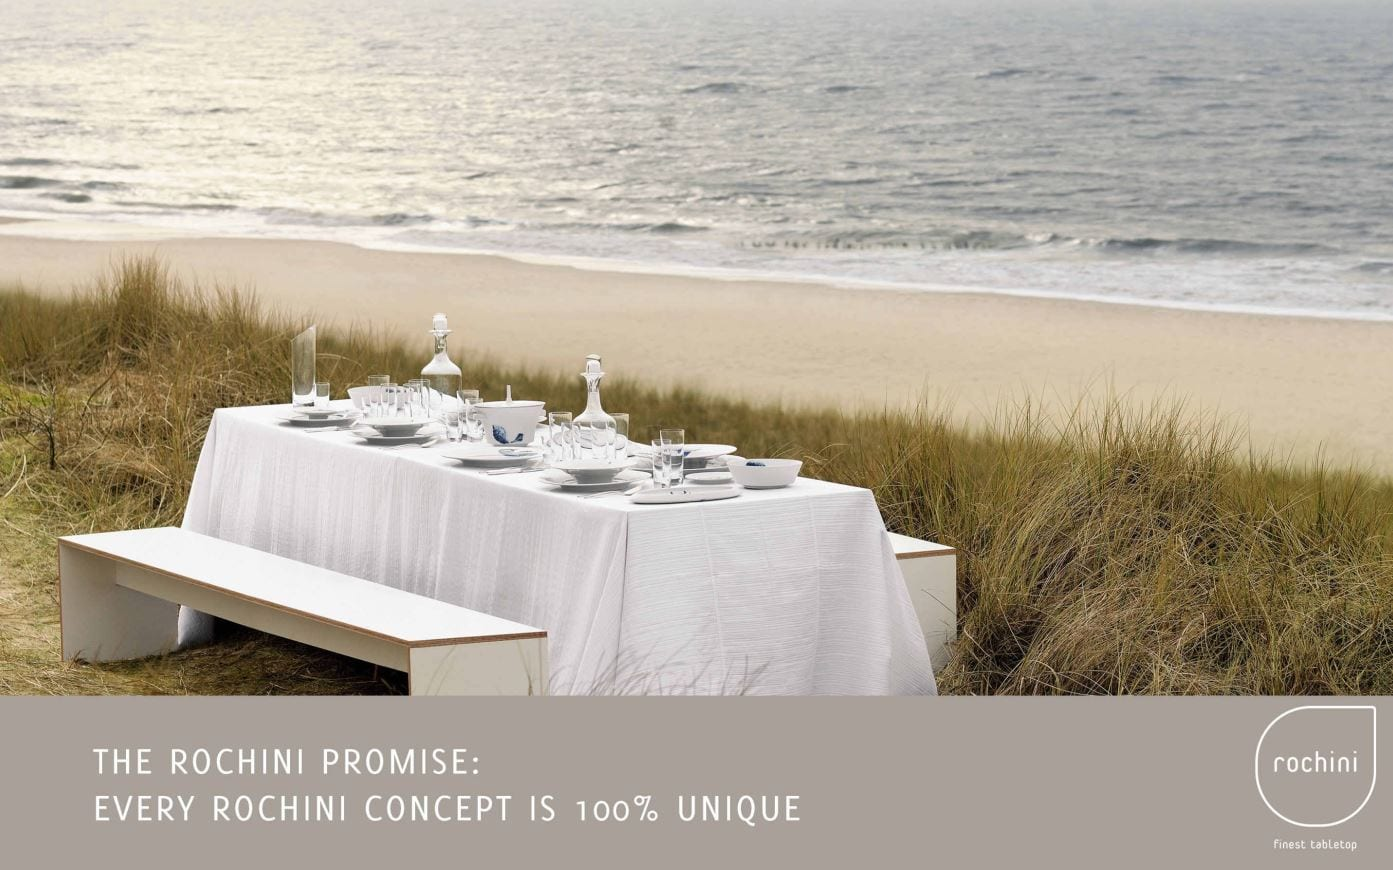 11 What´s the rochini concept?